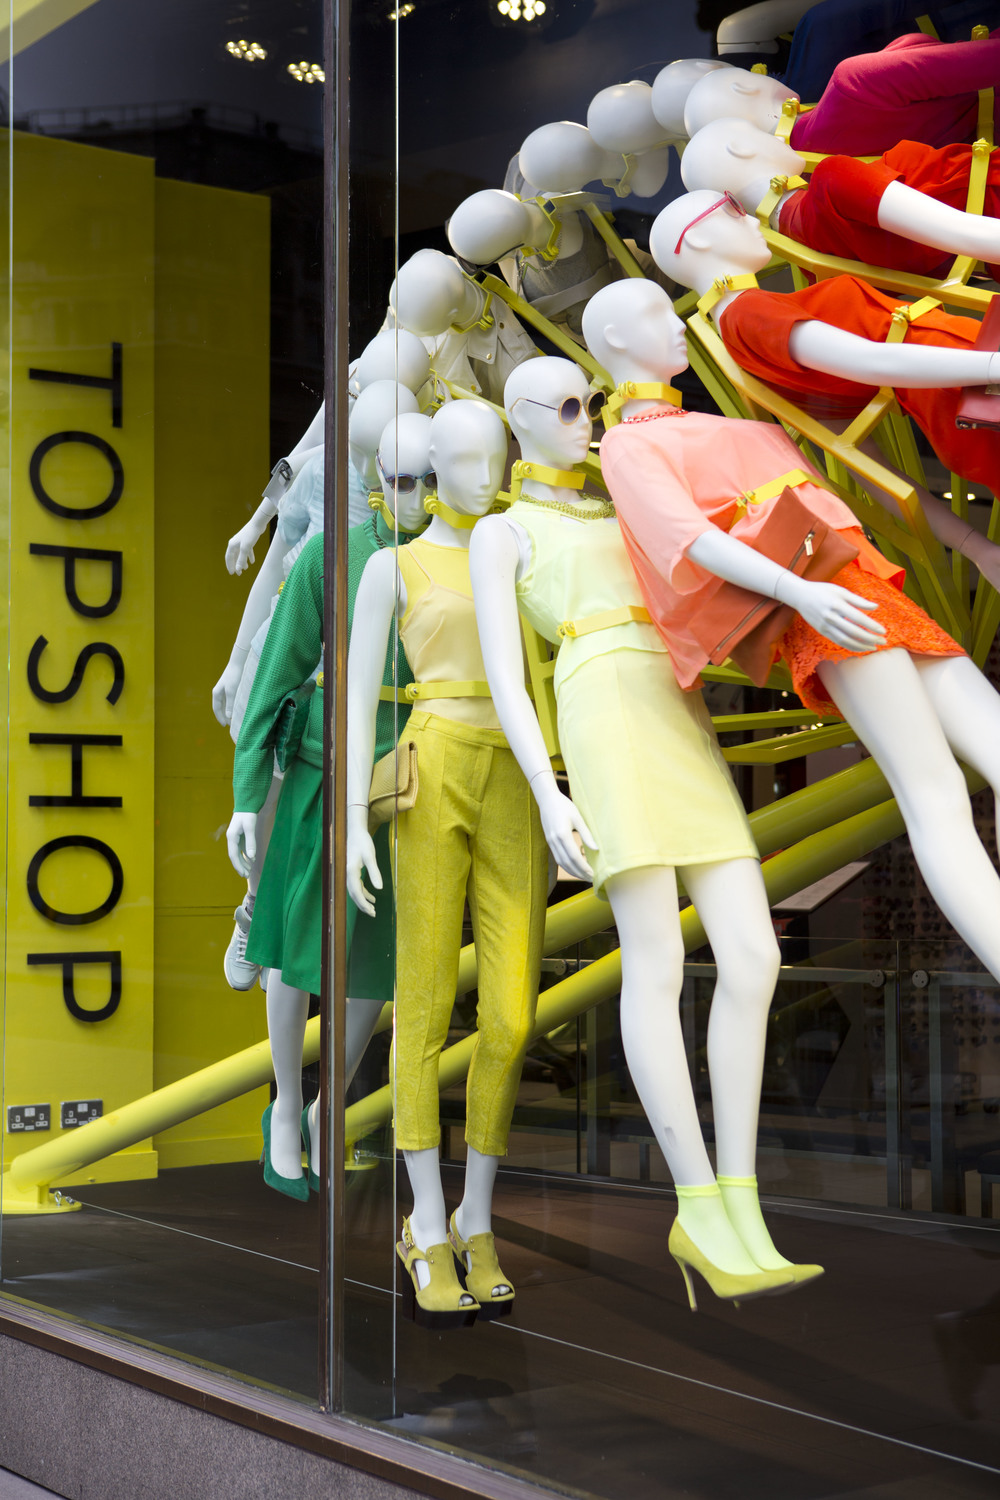 NEON-TOPSHOP-COLOUR-WHEEL-IMAGE-6.JPG